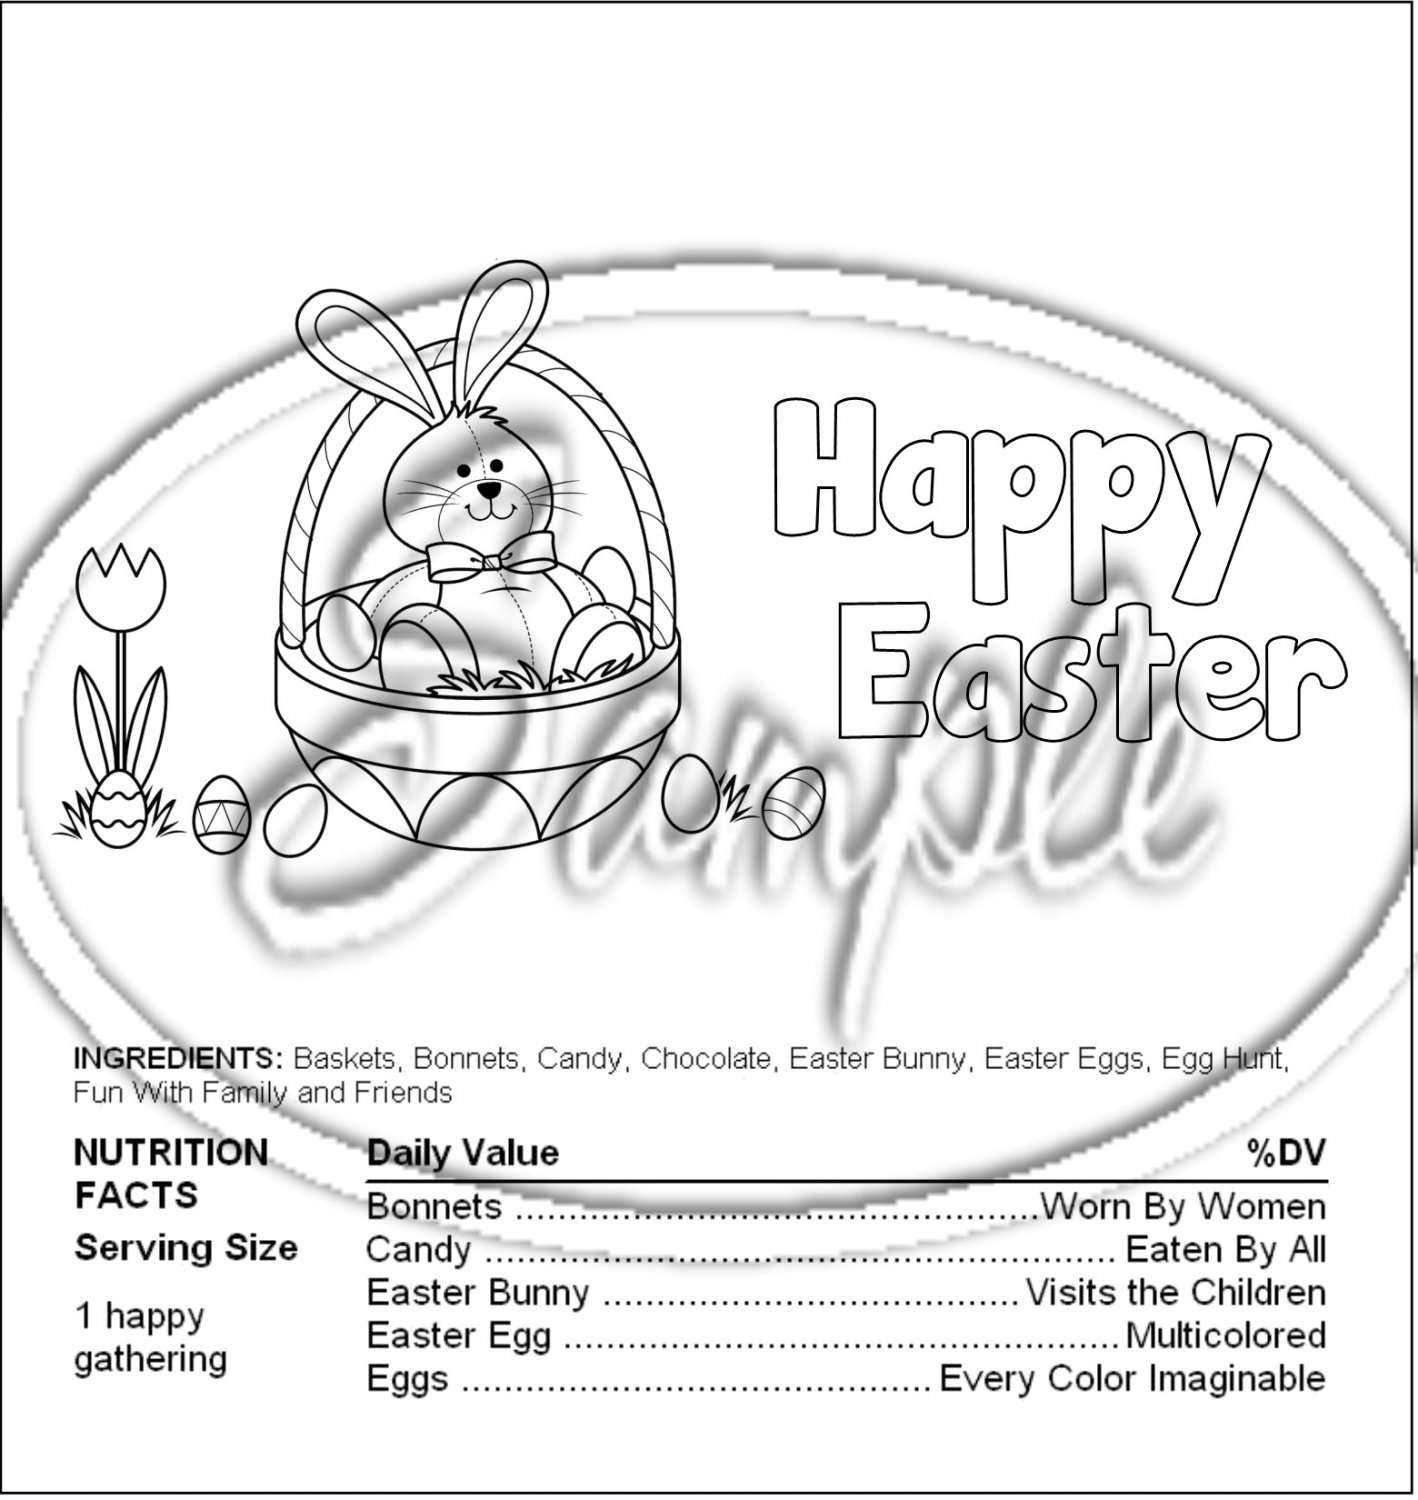 Color Me Easter #1 Nutritional Facts ~ Standard 1.55 oz